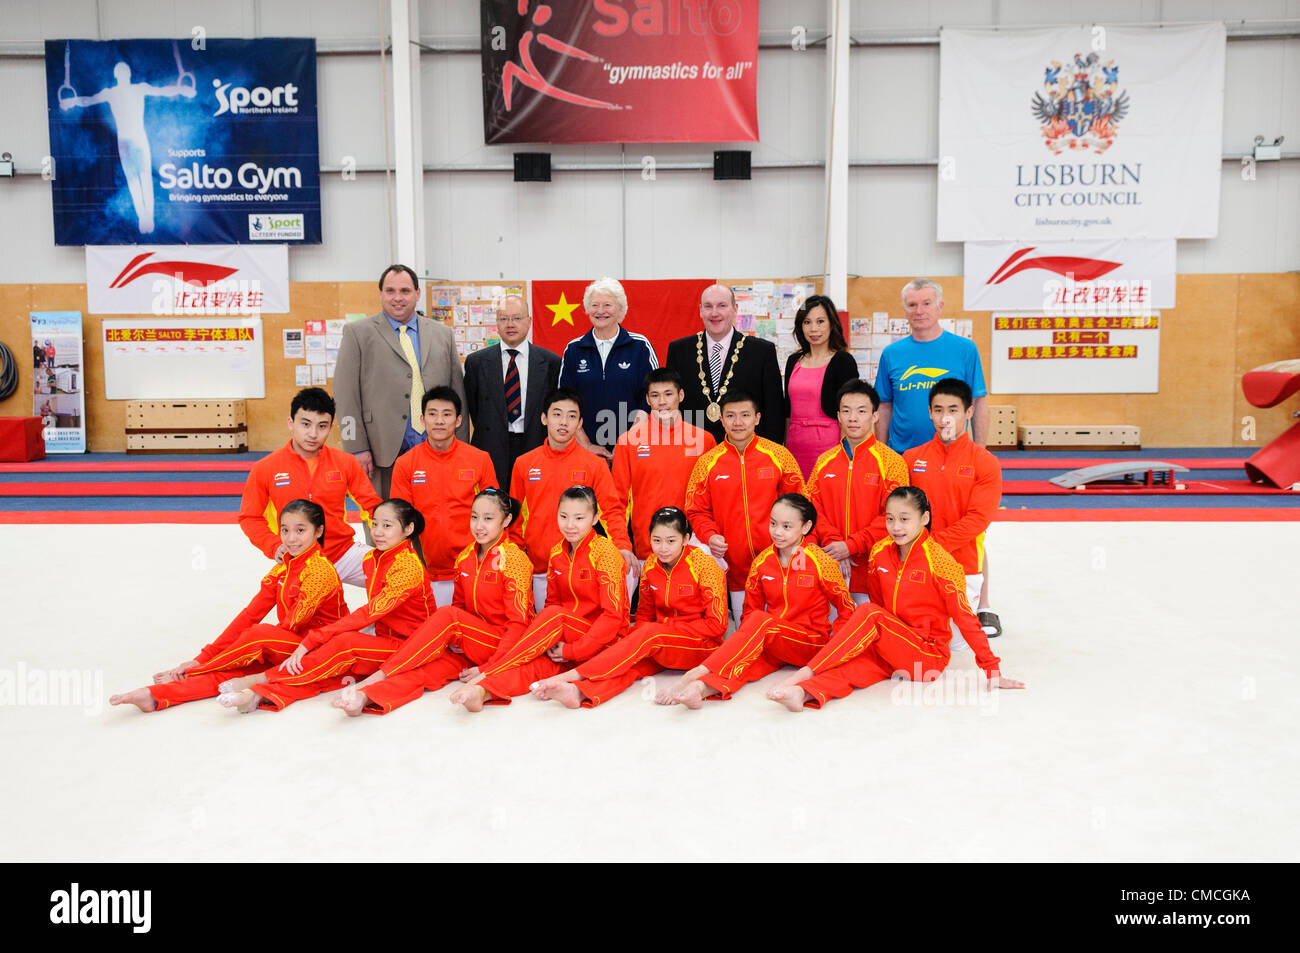 Lisburn, 18/07/2012 - Chinese gymnastic team for London 2012 Olympic games in Lisburn, Northern Ireland - Stock Image